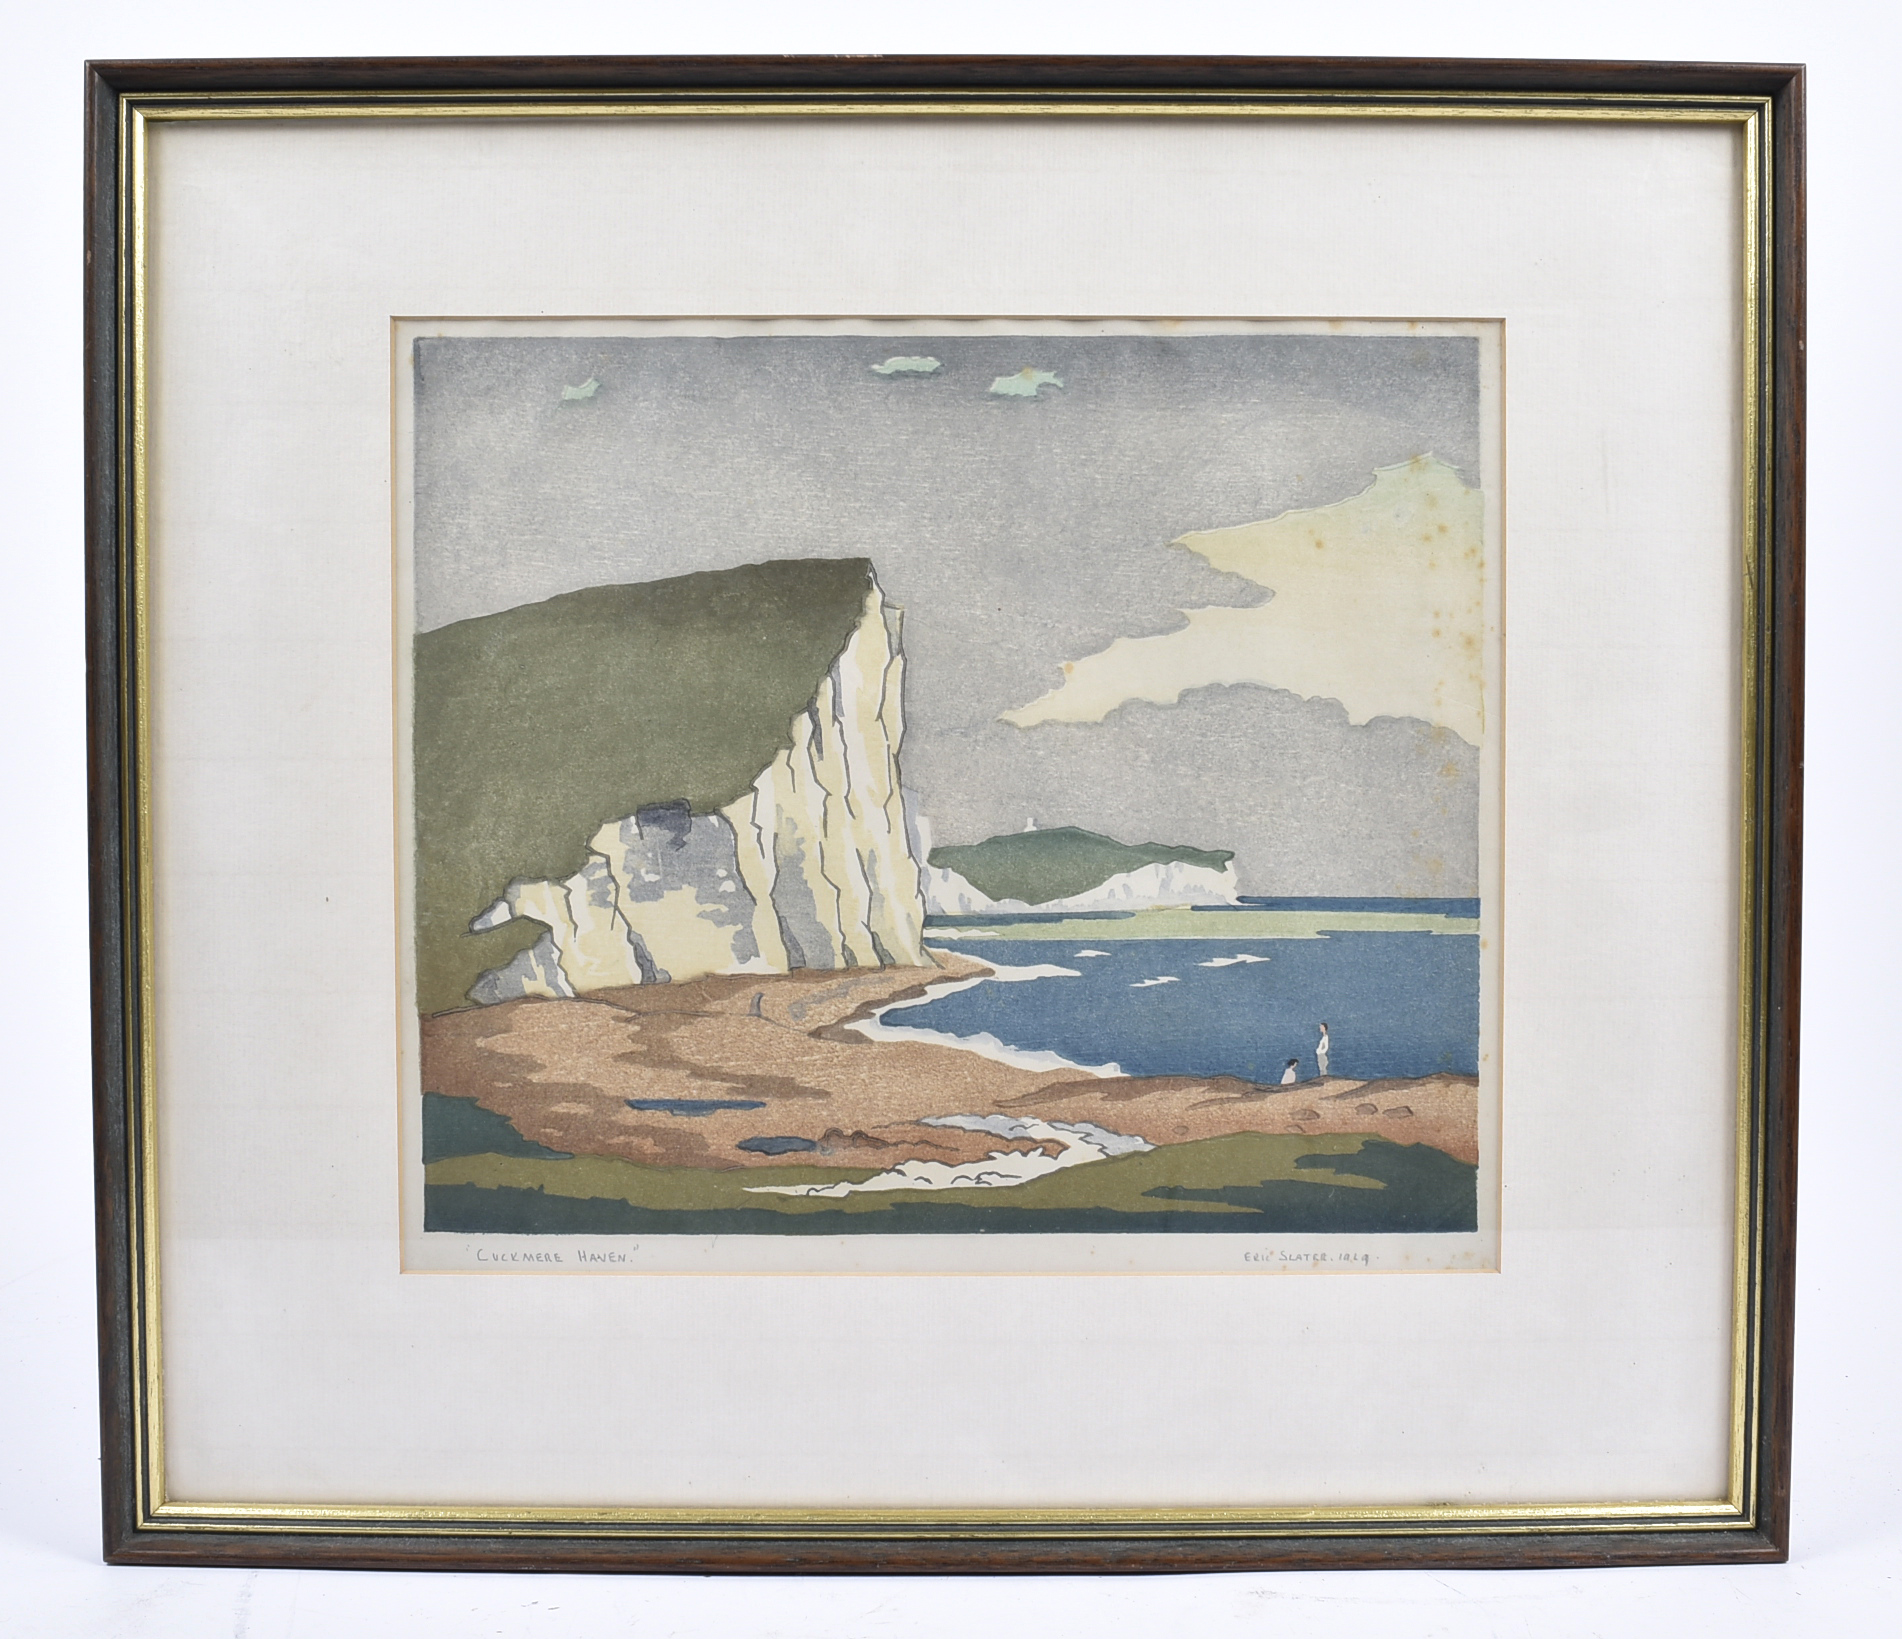 Eric Slater (1896-1963) coloured woodcut, 'Cuckmere Haven', 1929, signed, dated and titled in pencil - Image 2 of 2